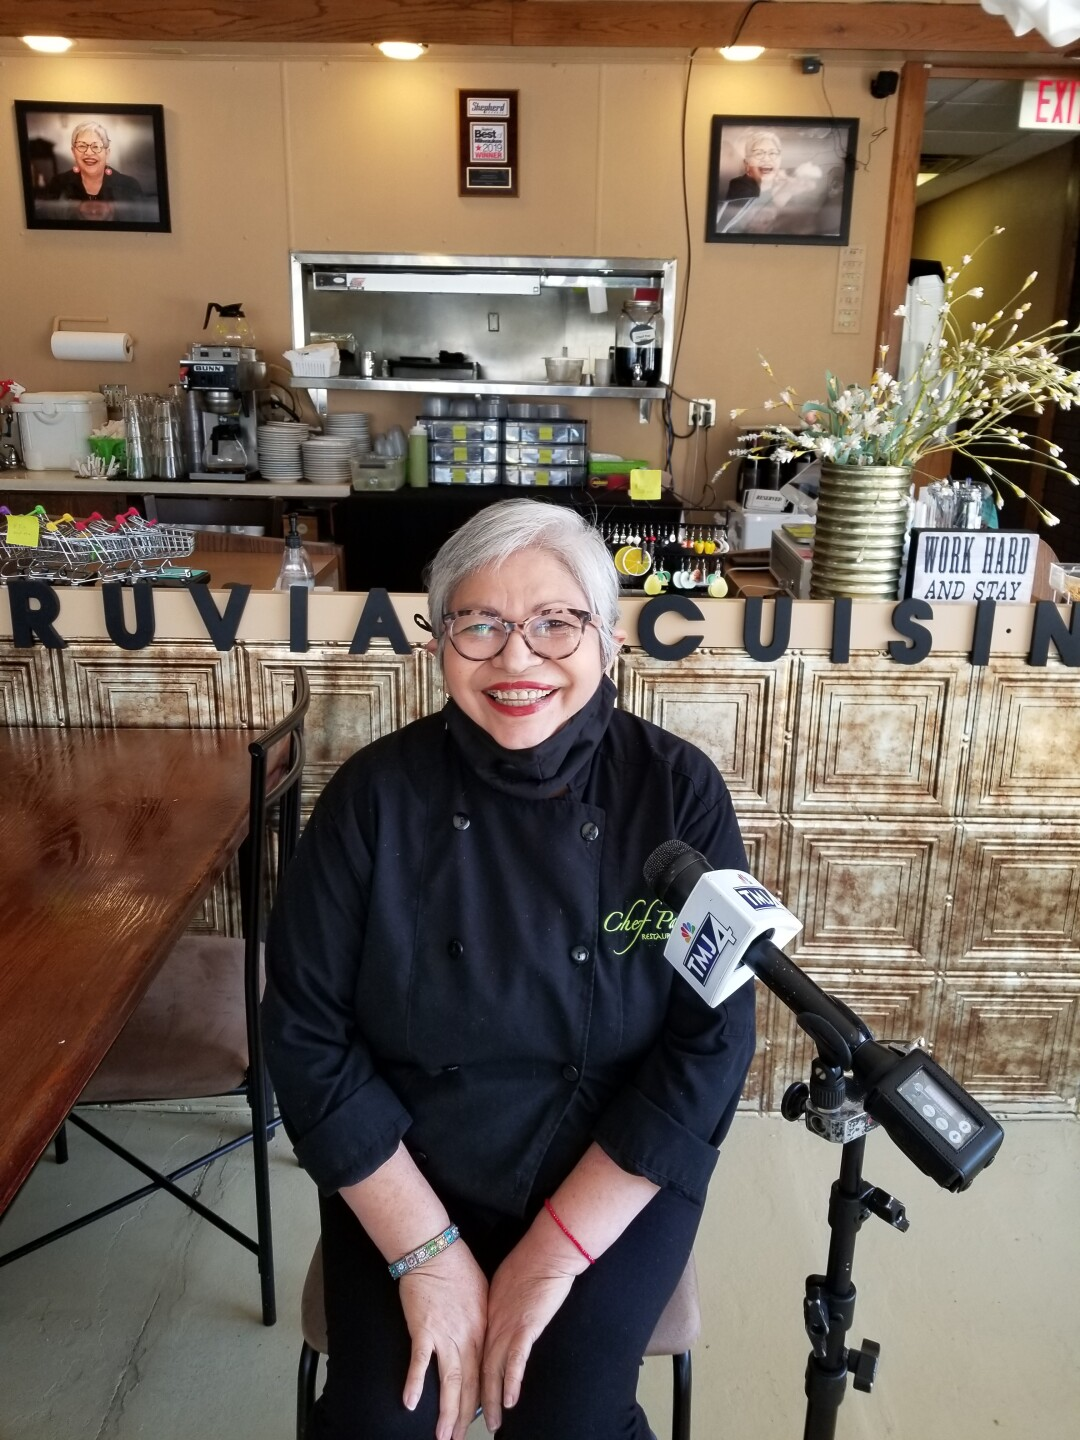 Chef Paz owner Maritza Paz said social media has helped her restaurant tremendously during the coronavirus pandemic.